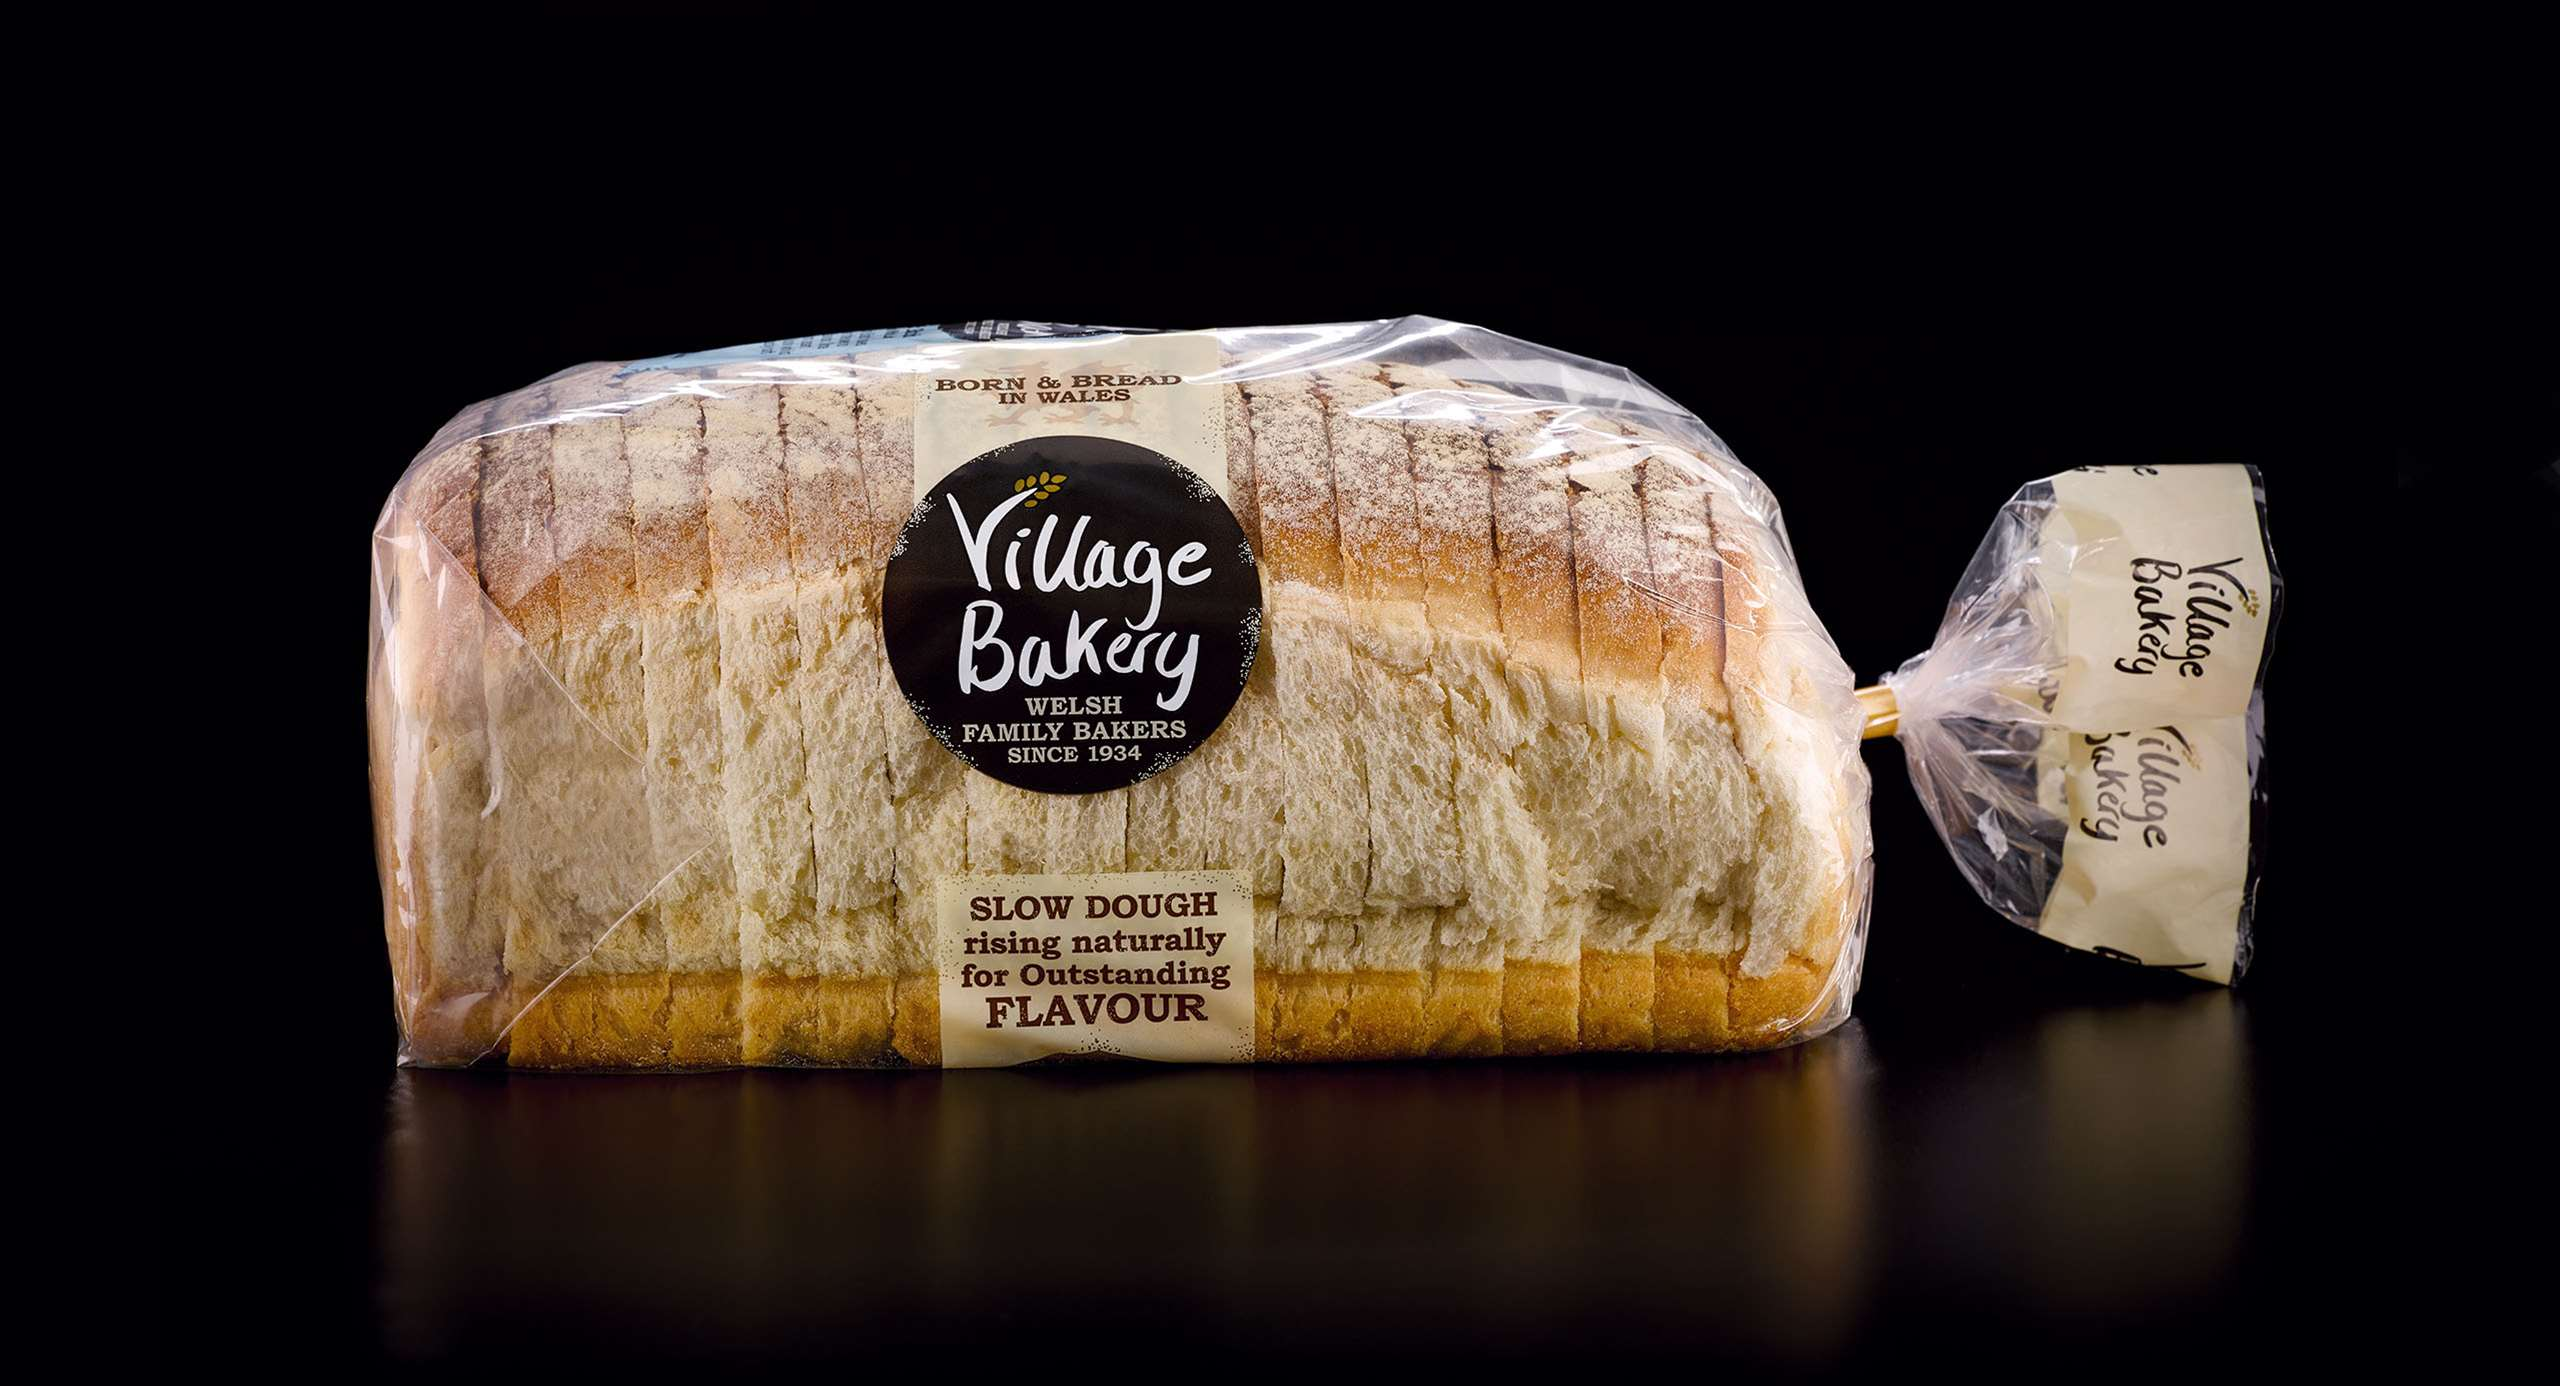 Village Bakery: Exactly what was kneaded